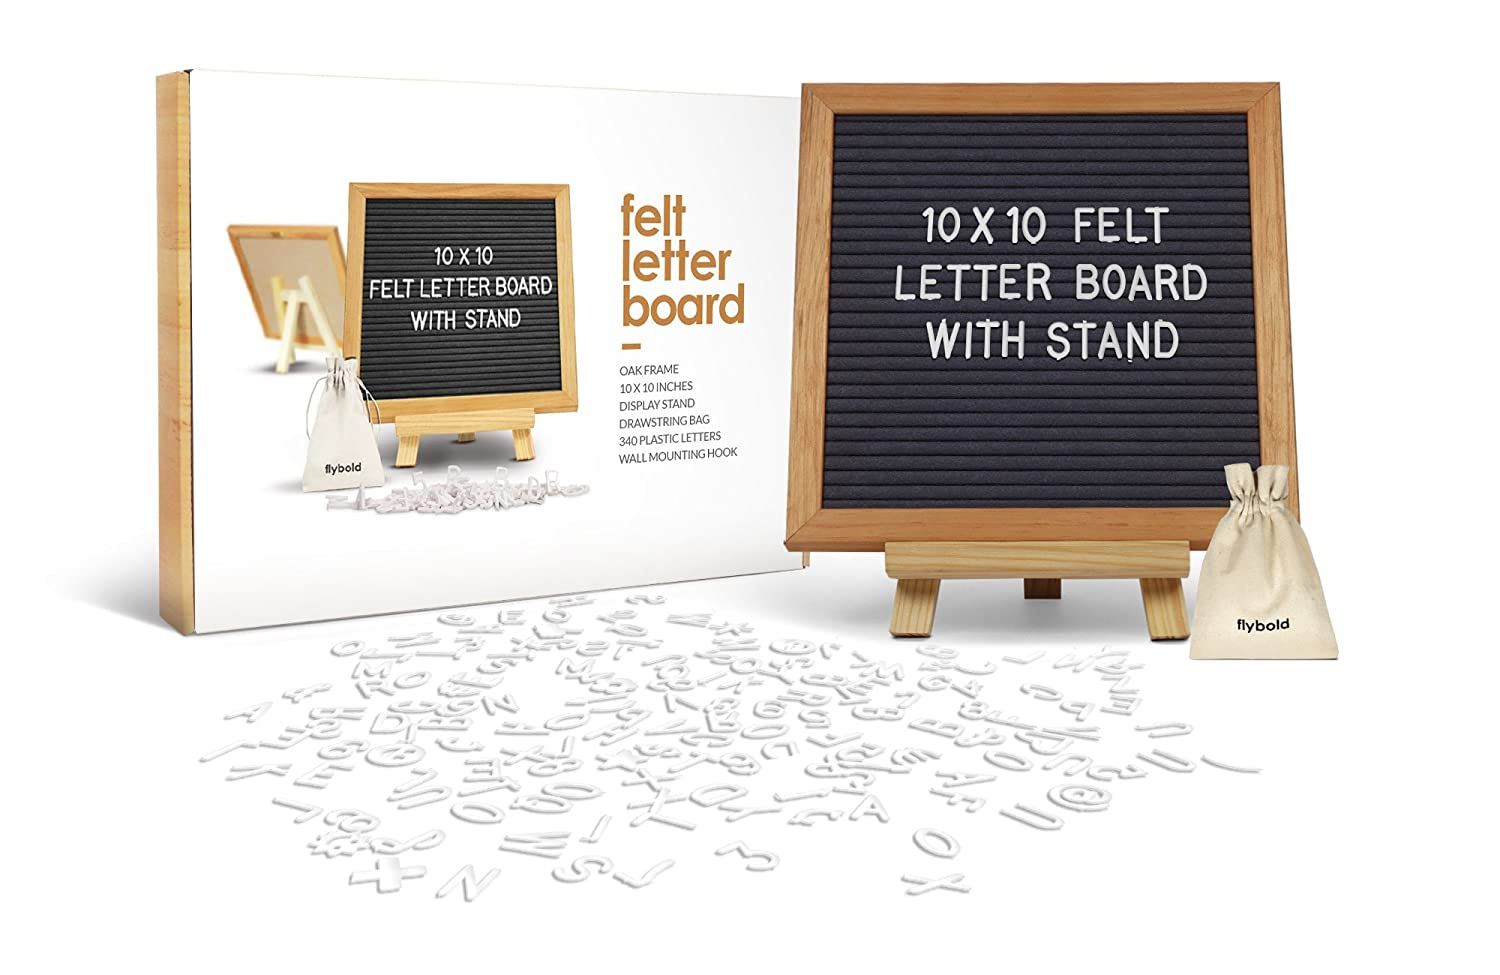 Felt Letter Sign Board 10 x 10 inches with Wooden Tripod Stand Classy Gray Felt 340 Changeable White Plastic Letters Gift Box Packaging Oak Frame Wall Mount Hanger Drawstring Storage Bag Perfect Gift DDRPL